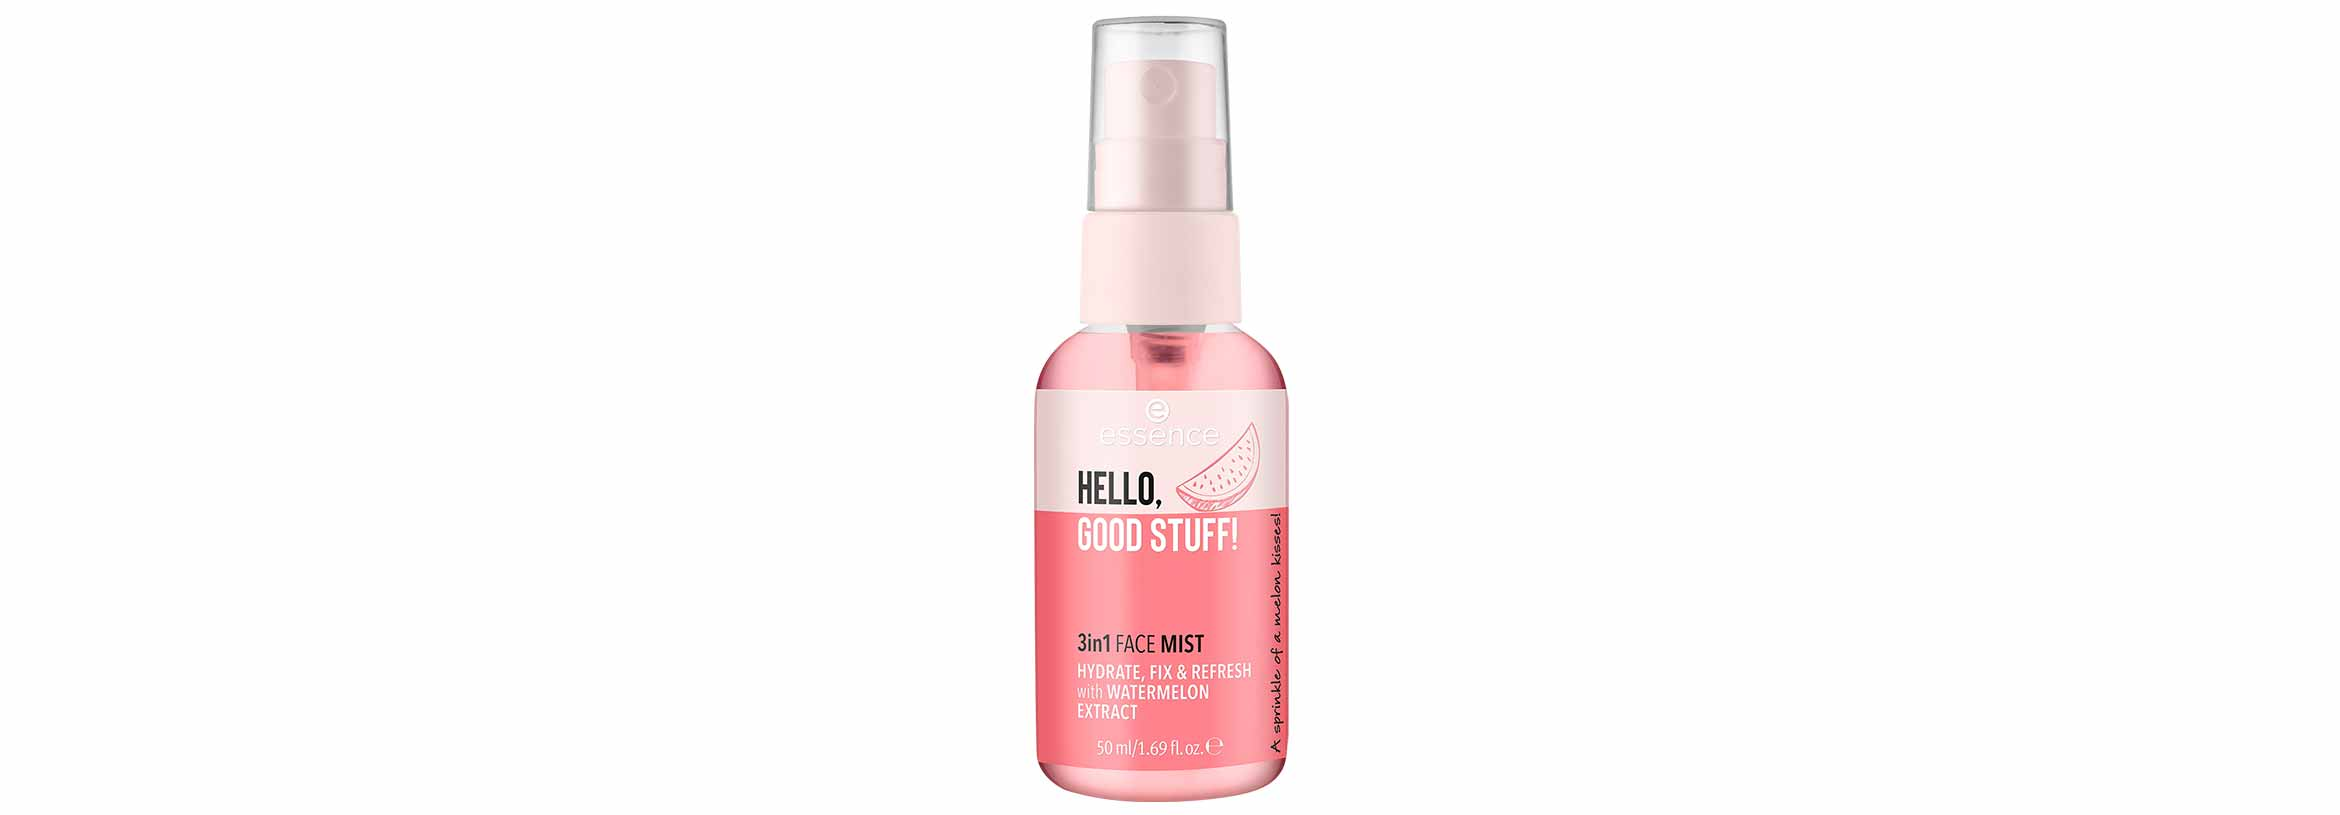 essence hello, good stuff 3in1 face mist